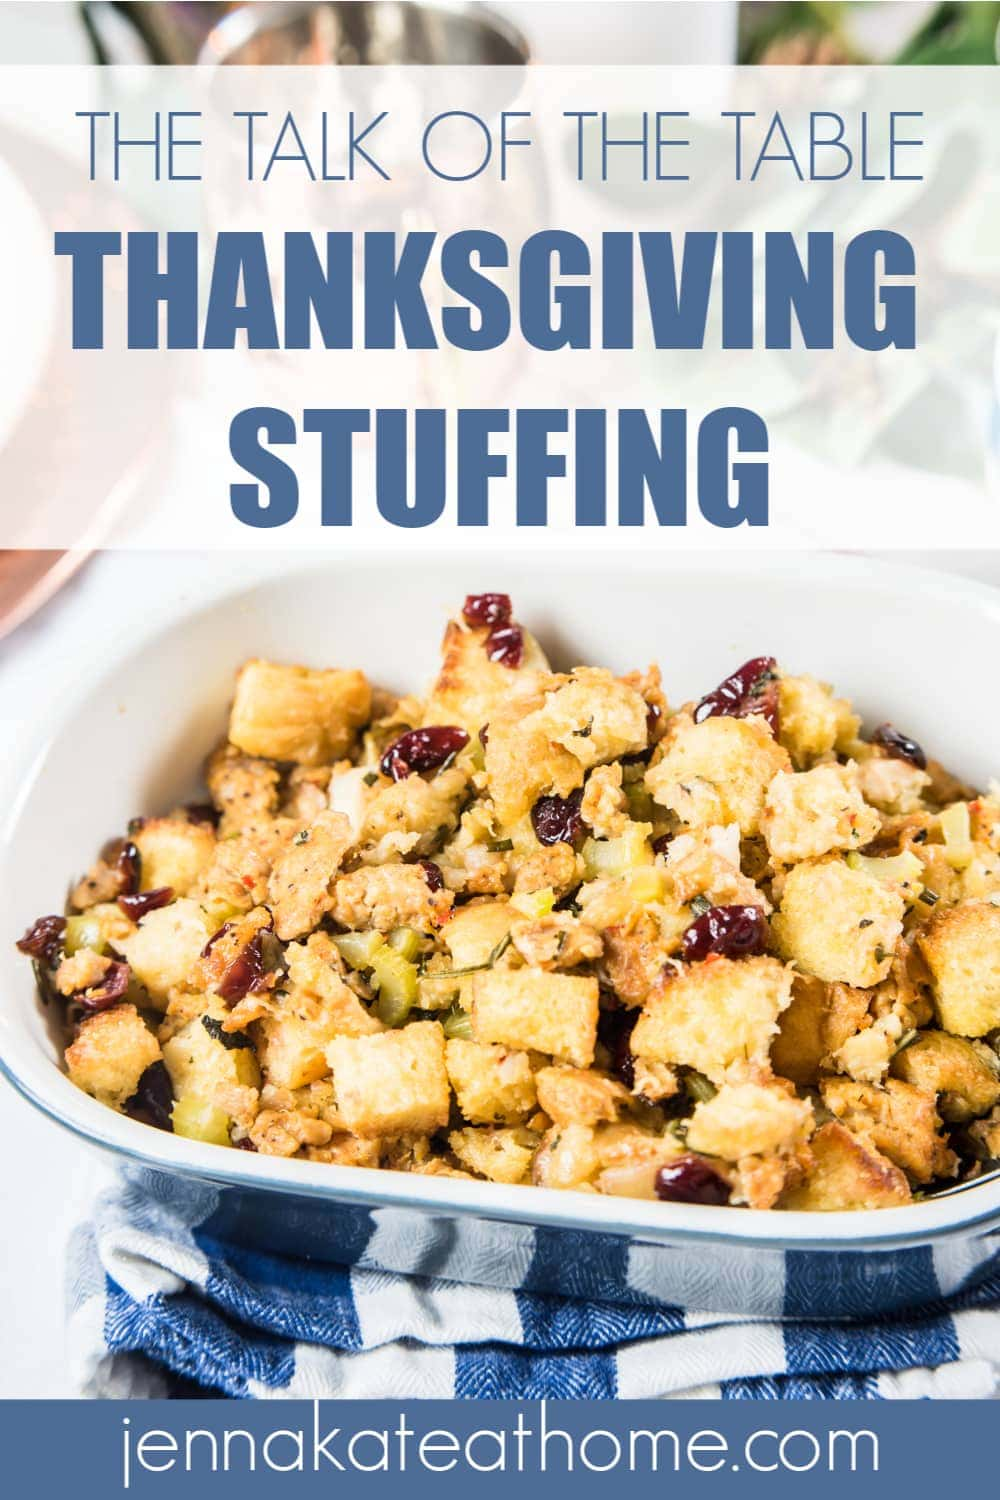 Give your guests something to talk about with this delicious homemade thanksgiving stuffing recipe